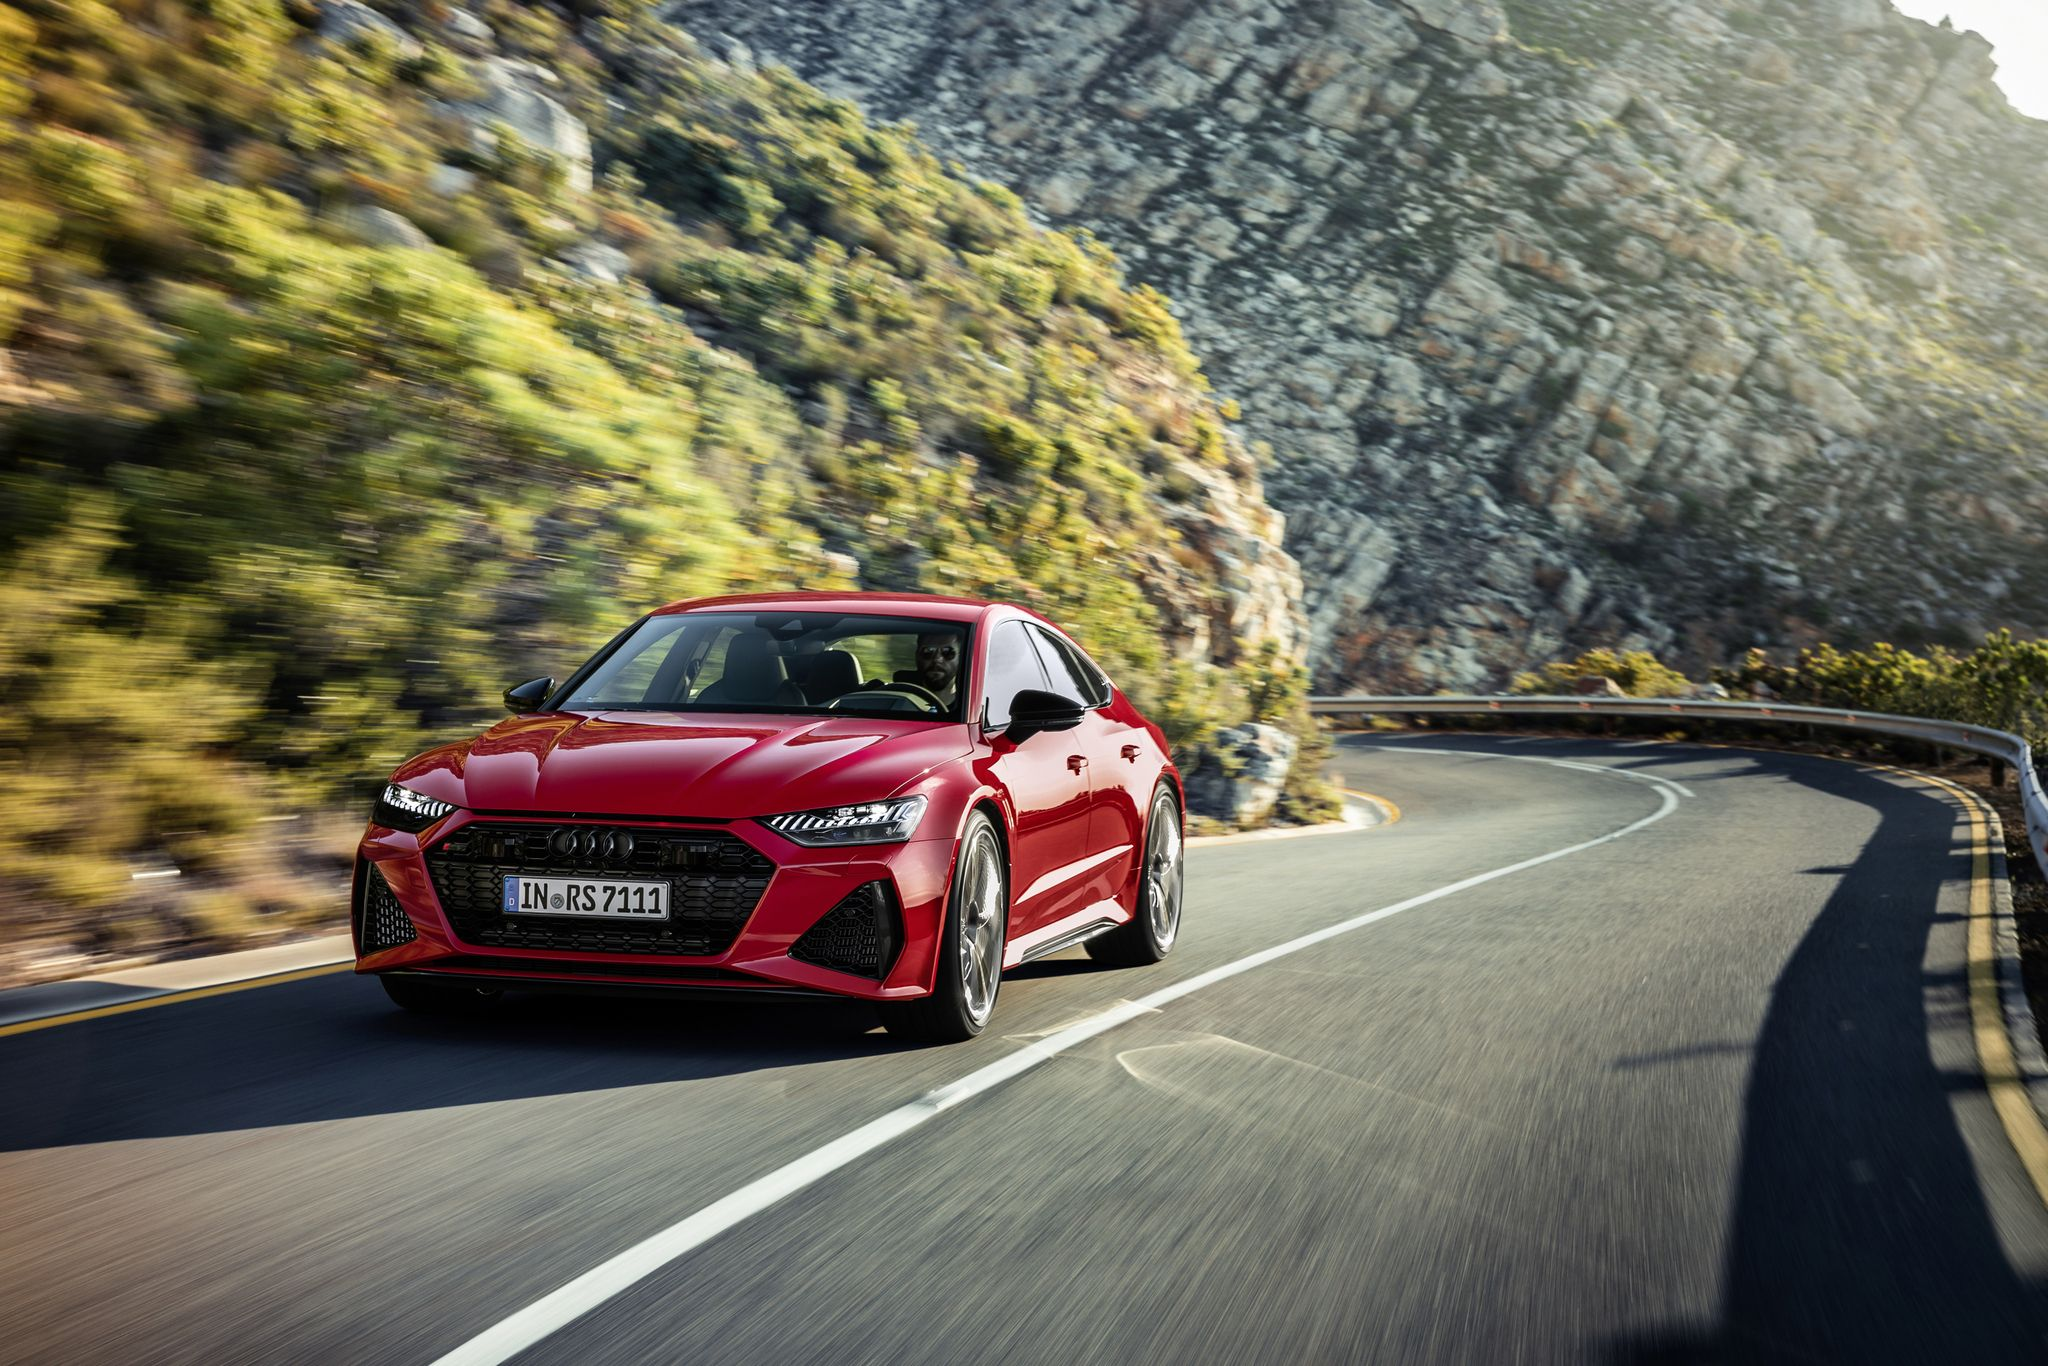 2020 Audi Rs7 Sportback Combines 591 Hp With Stunning Good Looks